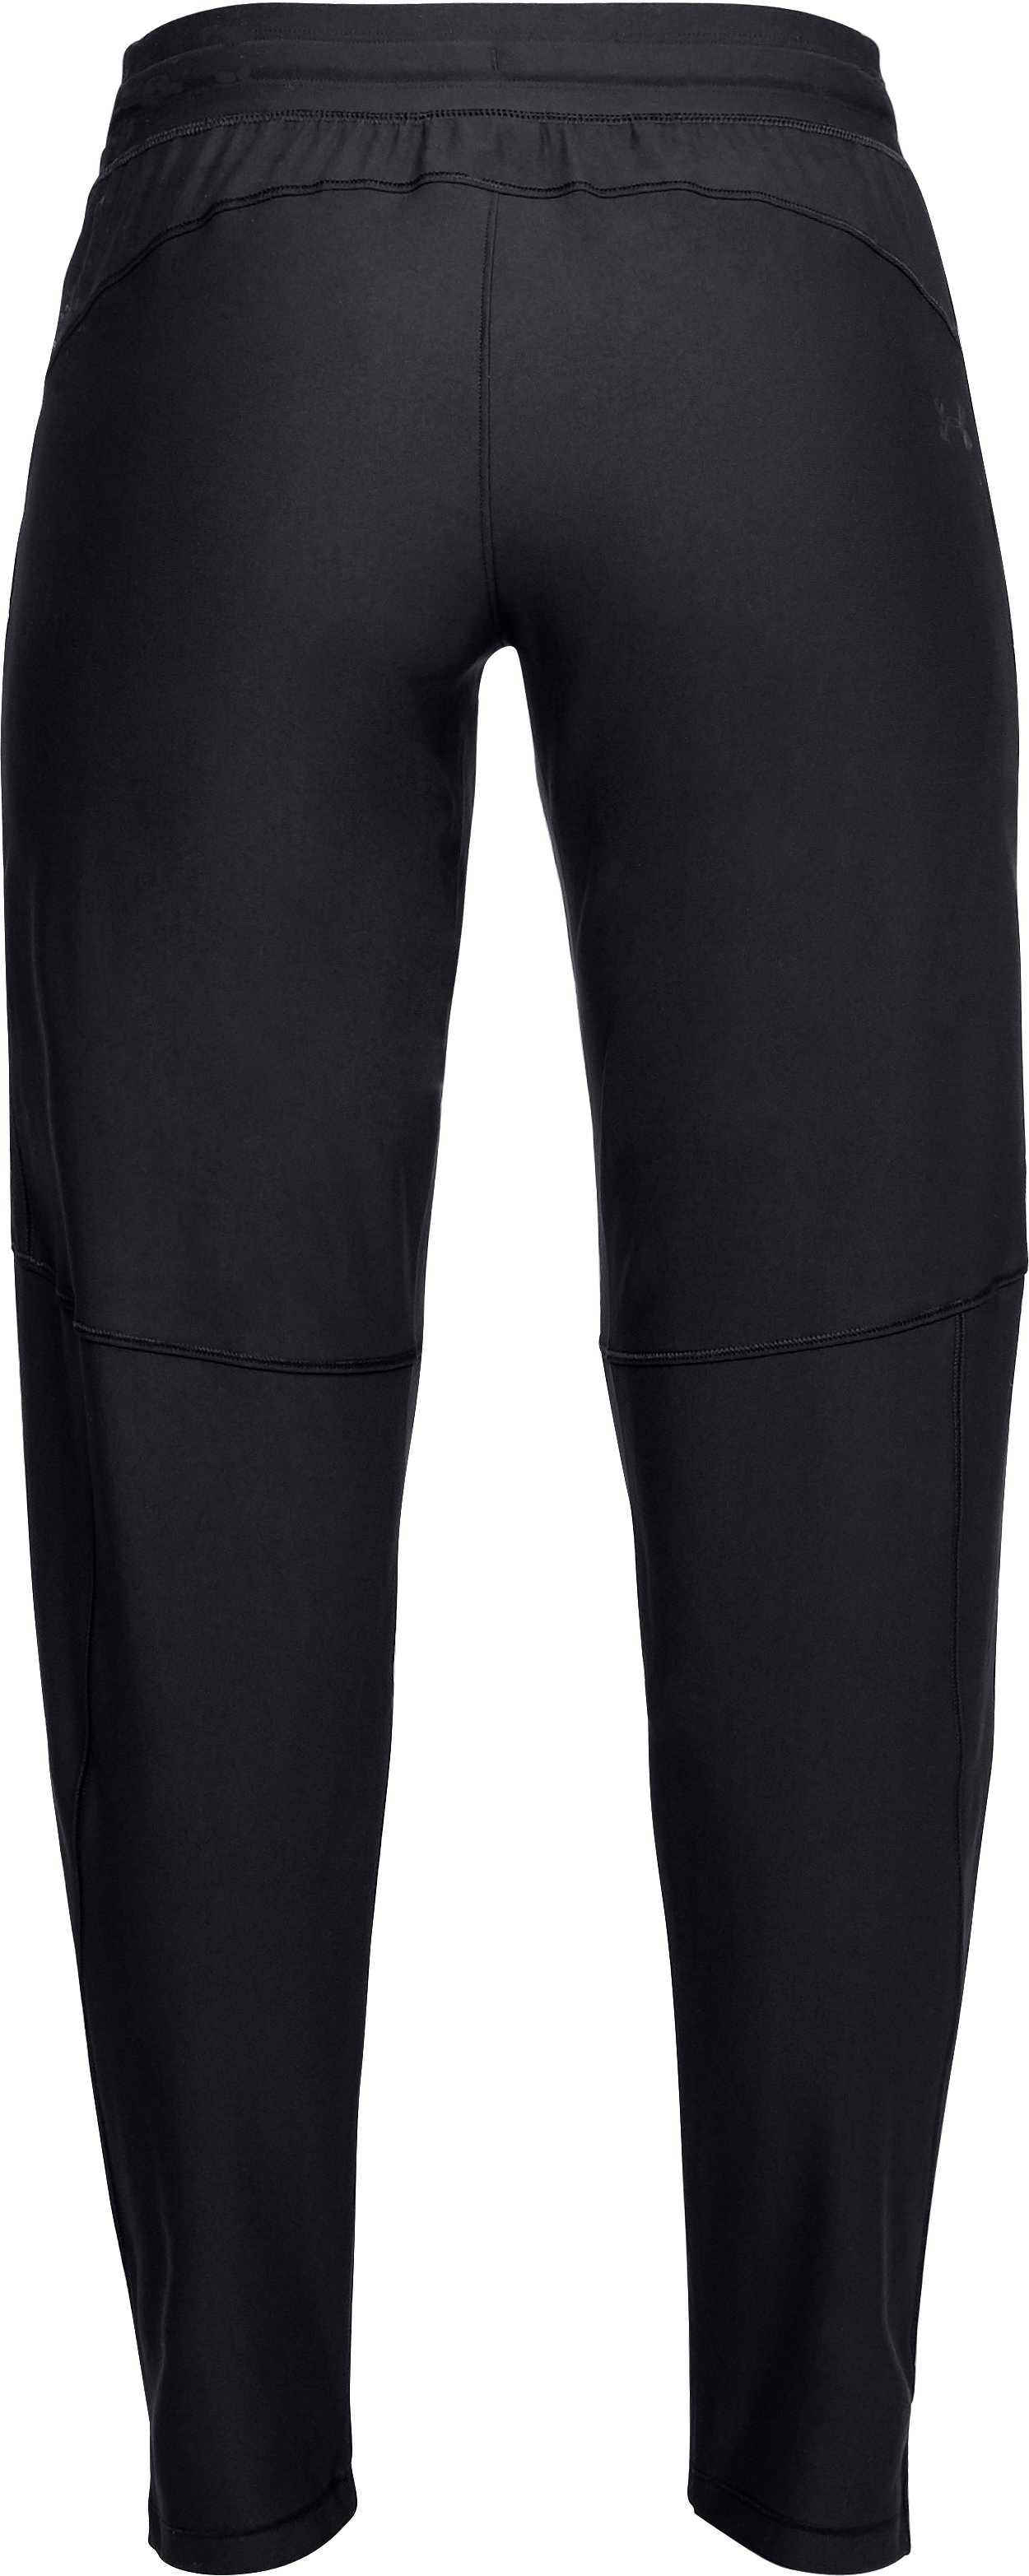 Women's UA Athlete Recovery Balance Track Pants, Black ,